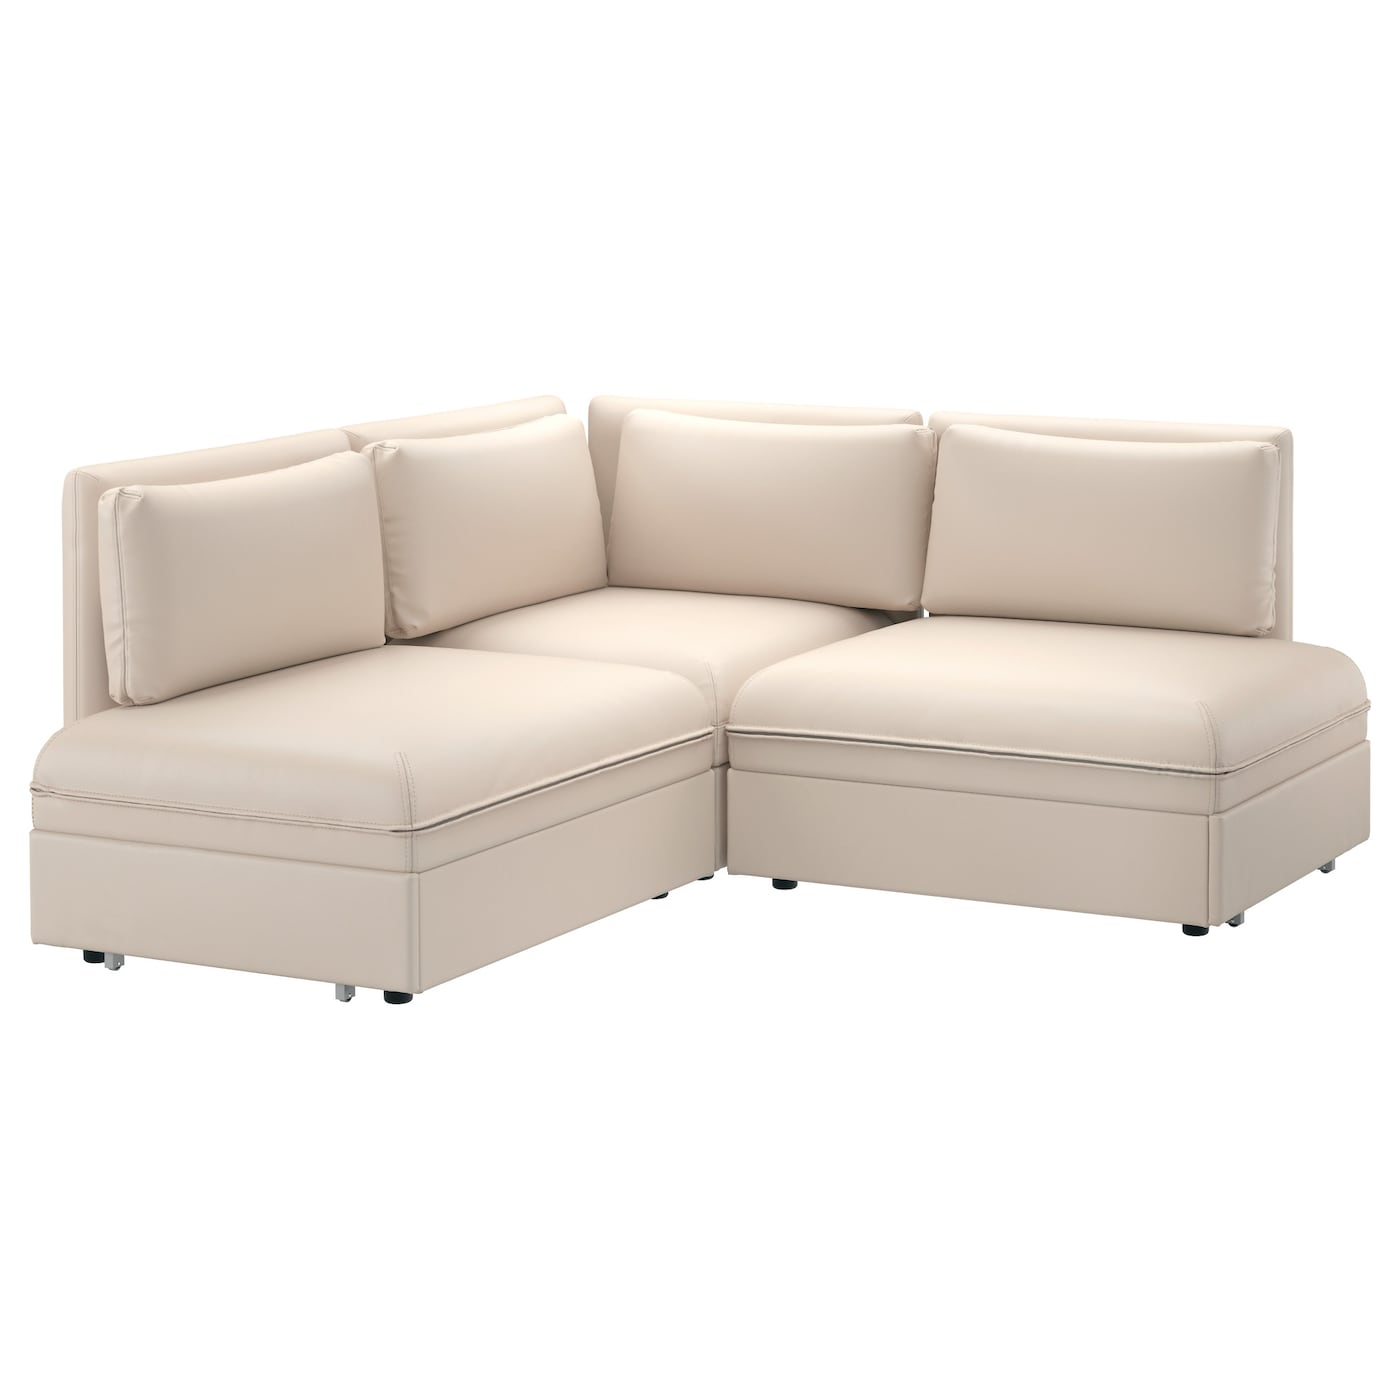 Vallentuna 3 seat corner sofa with bed murum beige ikea for Ikea corner sofa